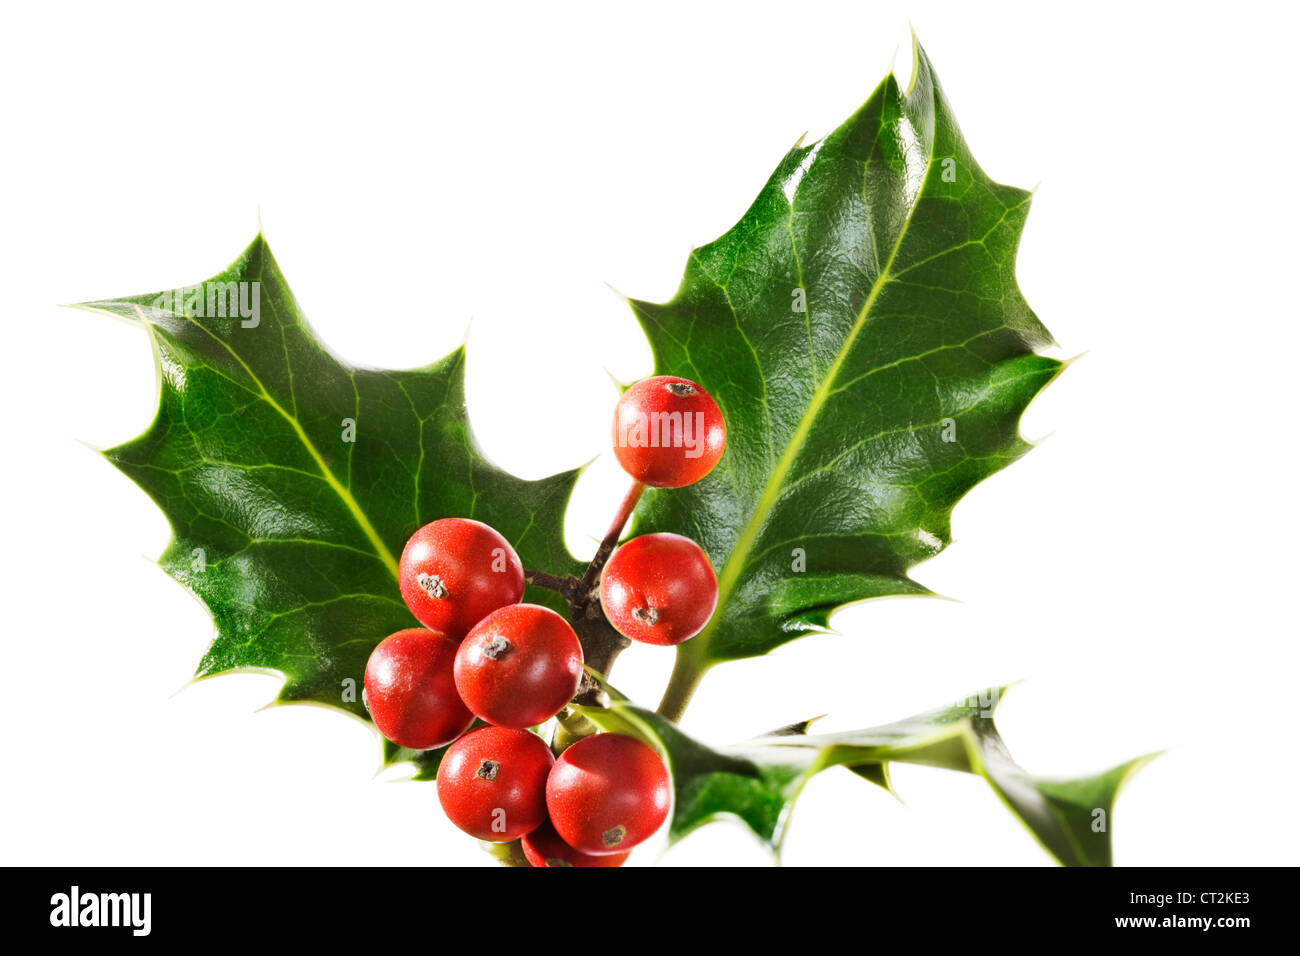 Holly branch with berries, isolated - Stock Image